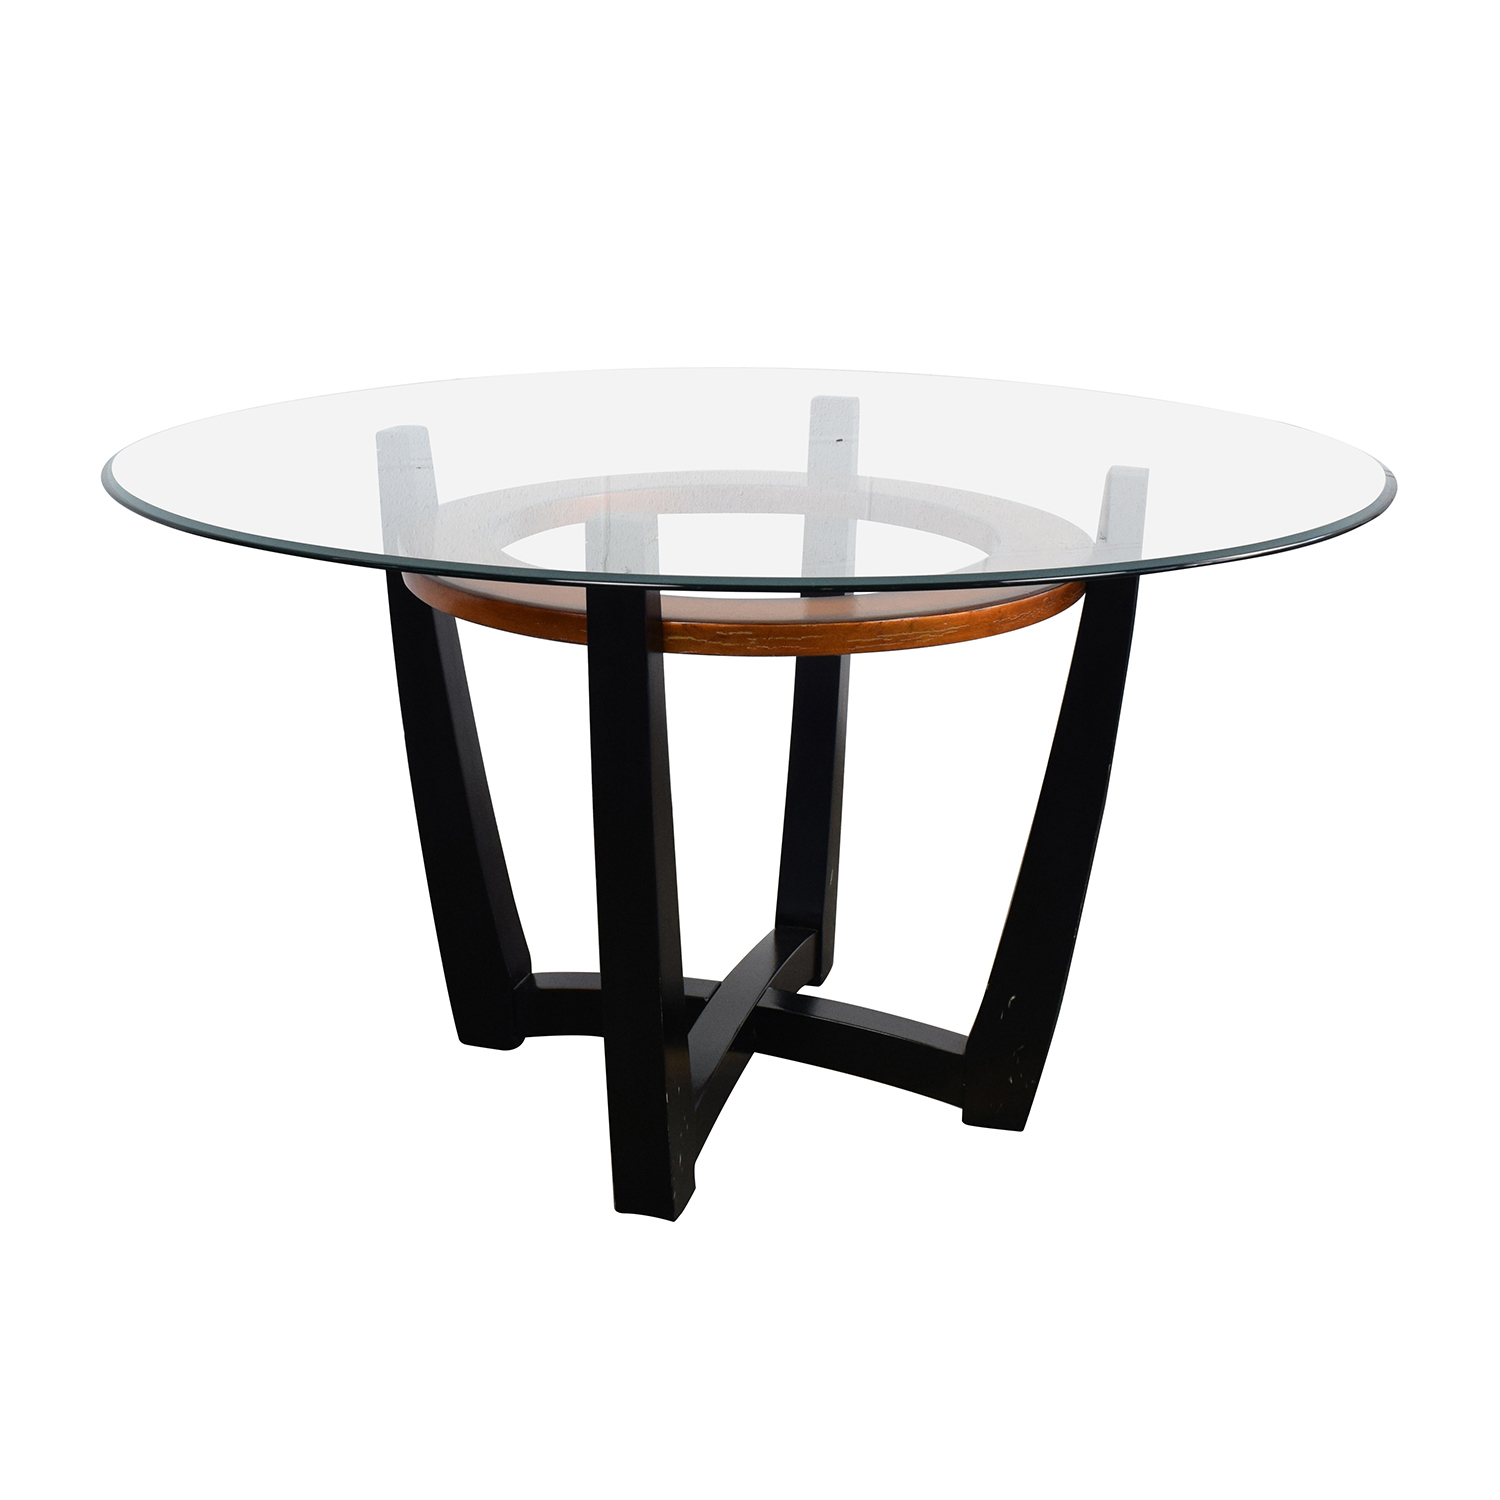 88 off macy 39 s macy 39 s elation round glass dining table tables Round glass dining table